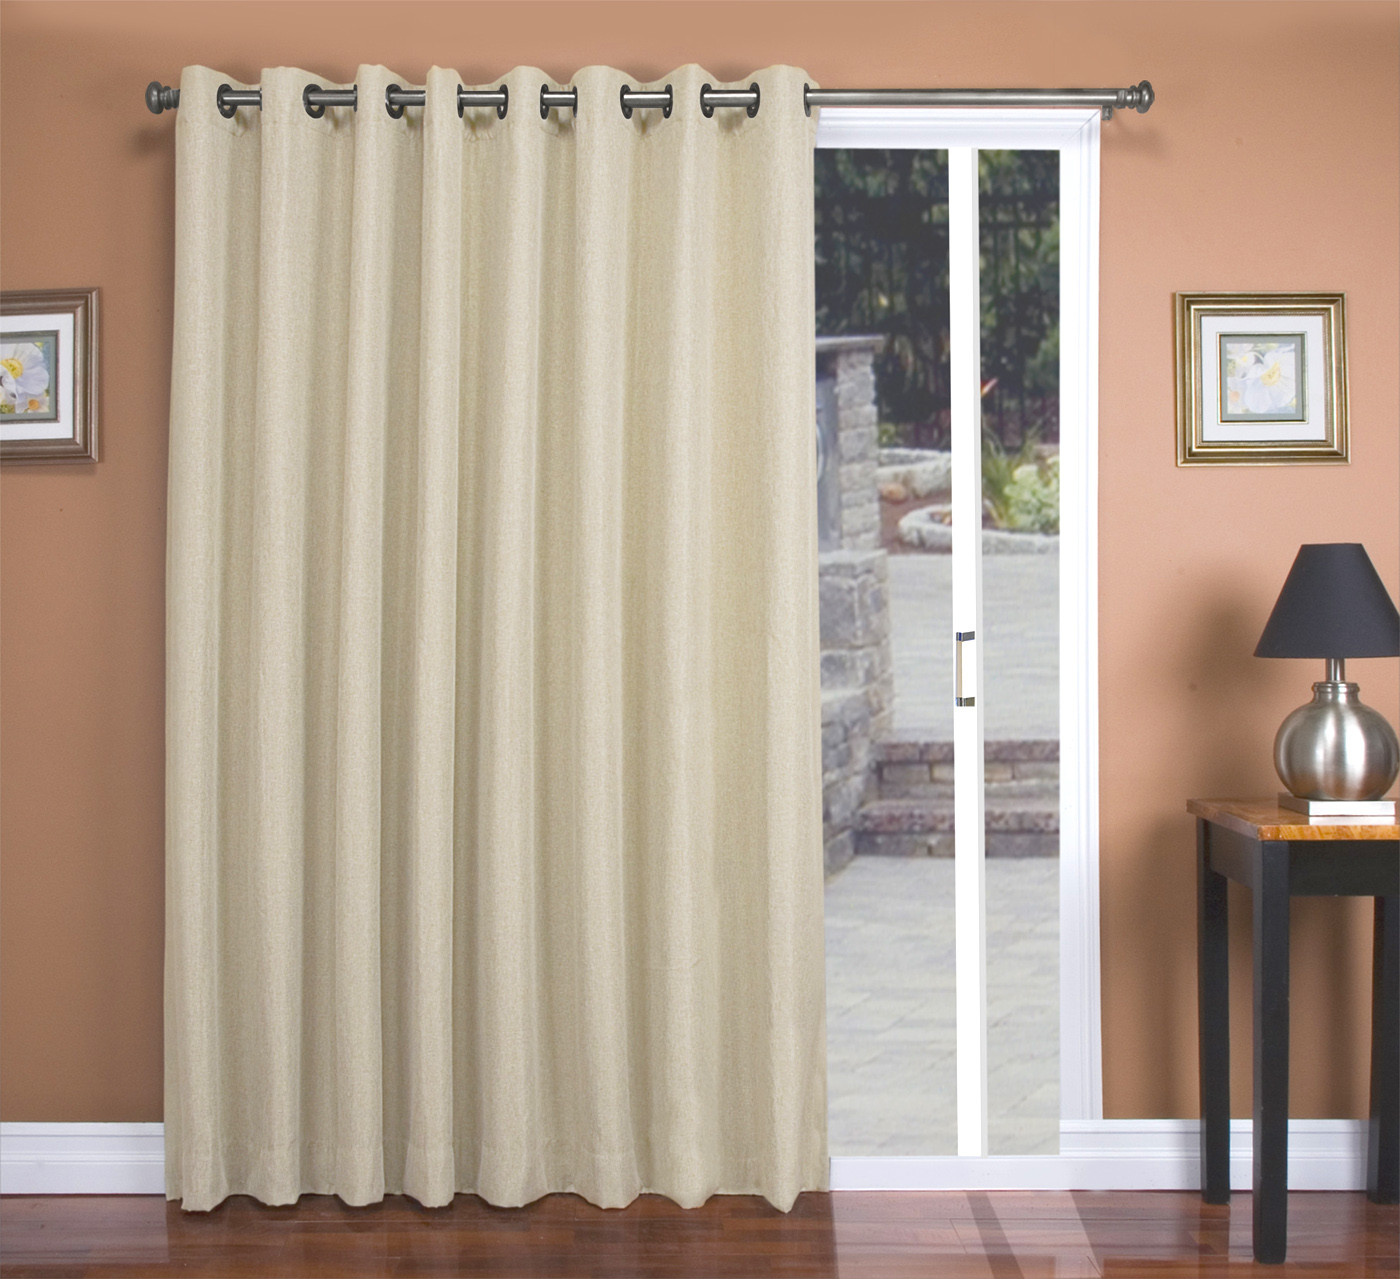 Best ideas about Patio Door Curtain Ideas . Save or Pin Patio Door Curtains TheCurtainShop Now.